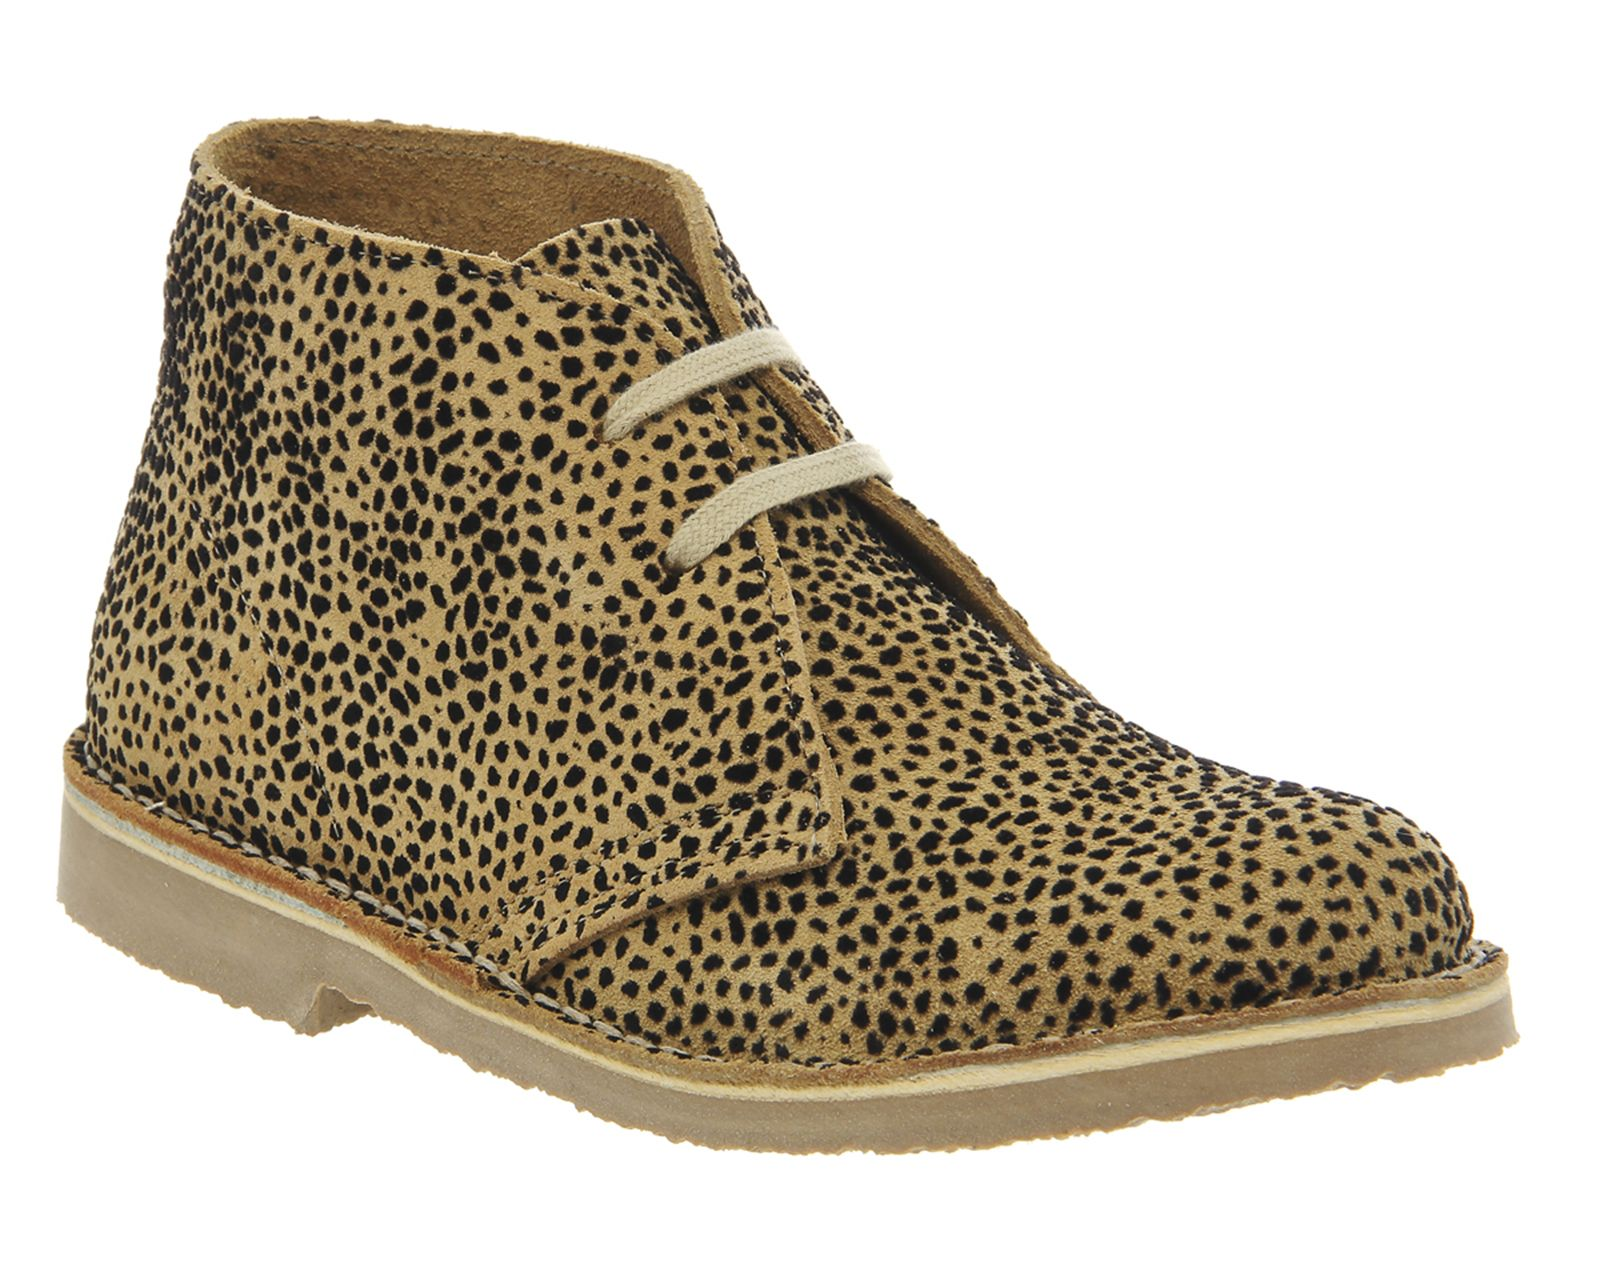 Office Uphill Desert Boot Leopard Flocked Suede Ankle Boots